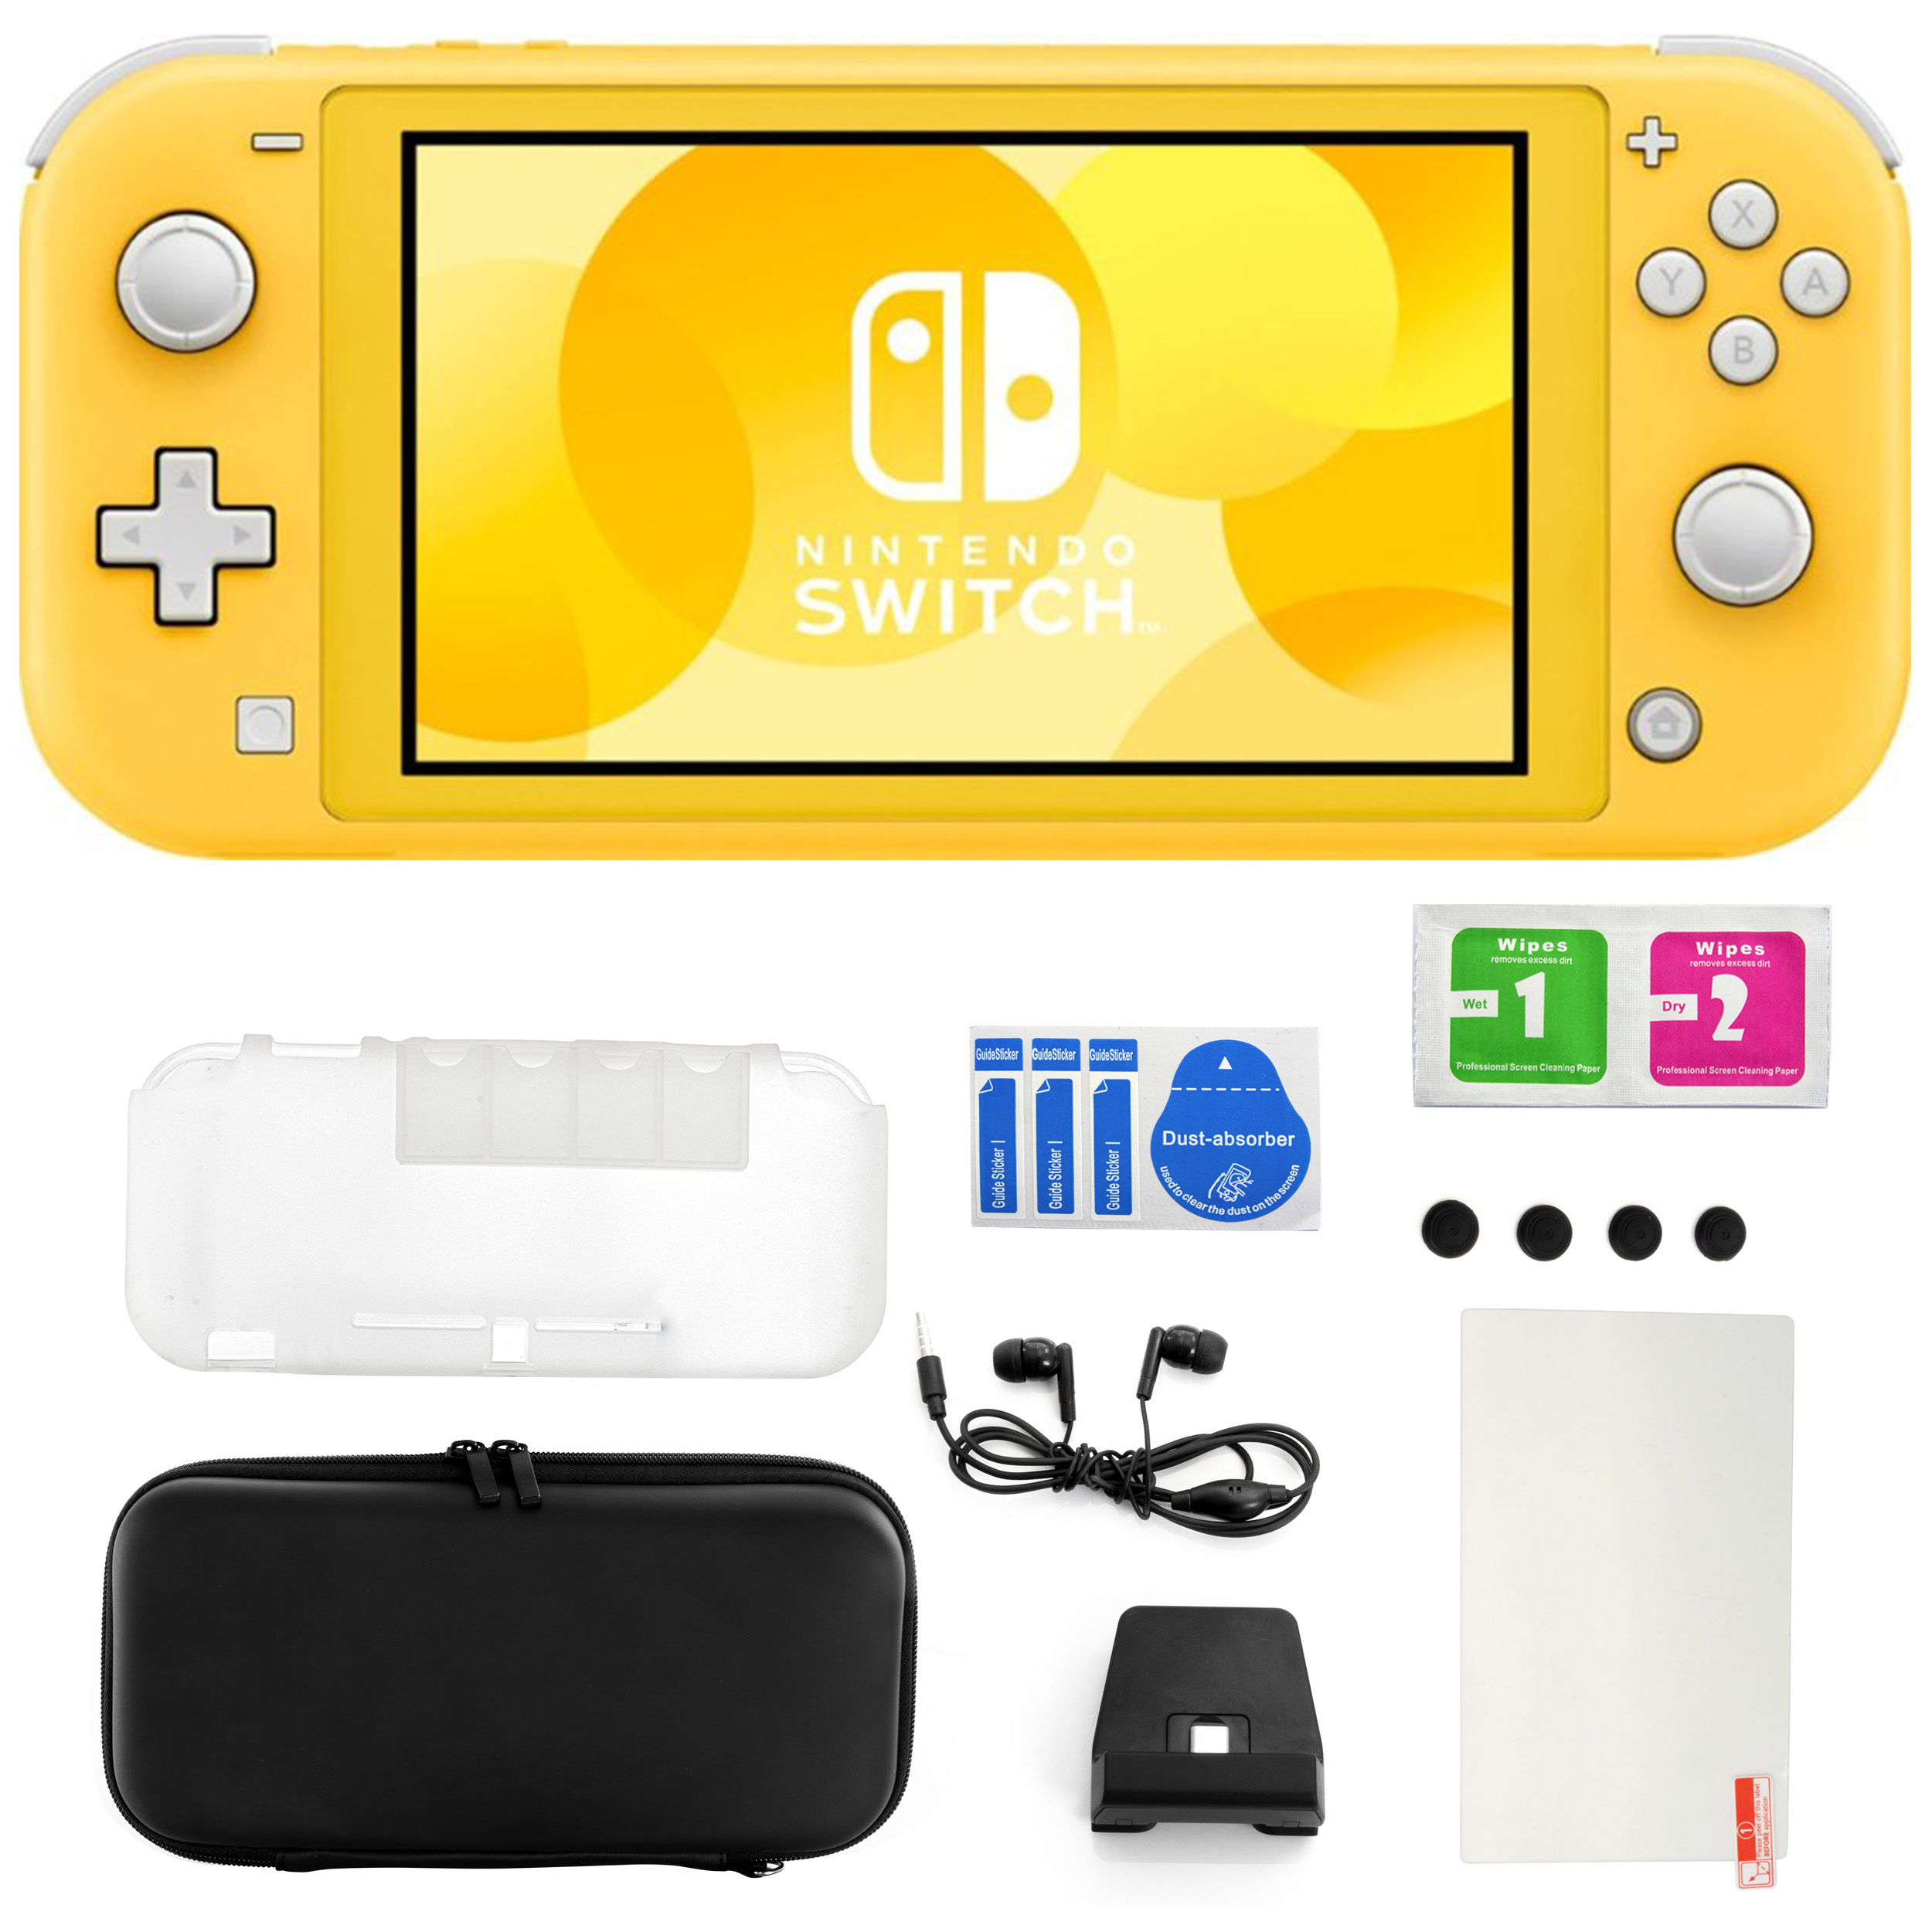 Nintendo Switch Lite in Yellow with 11 in 1 Accessories Kit